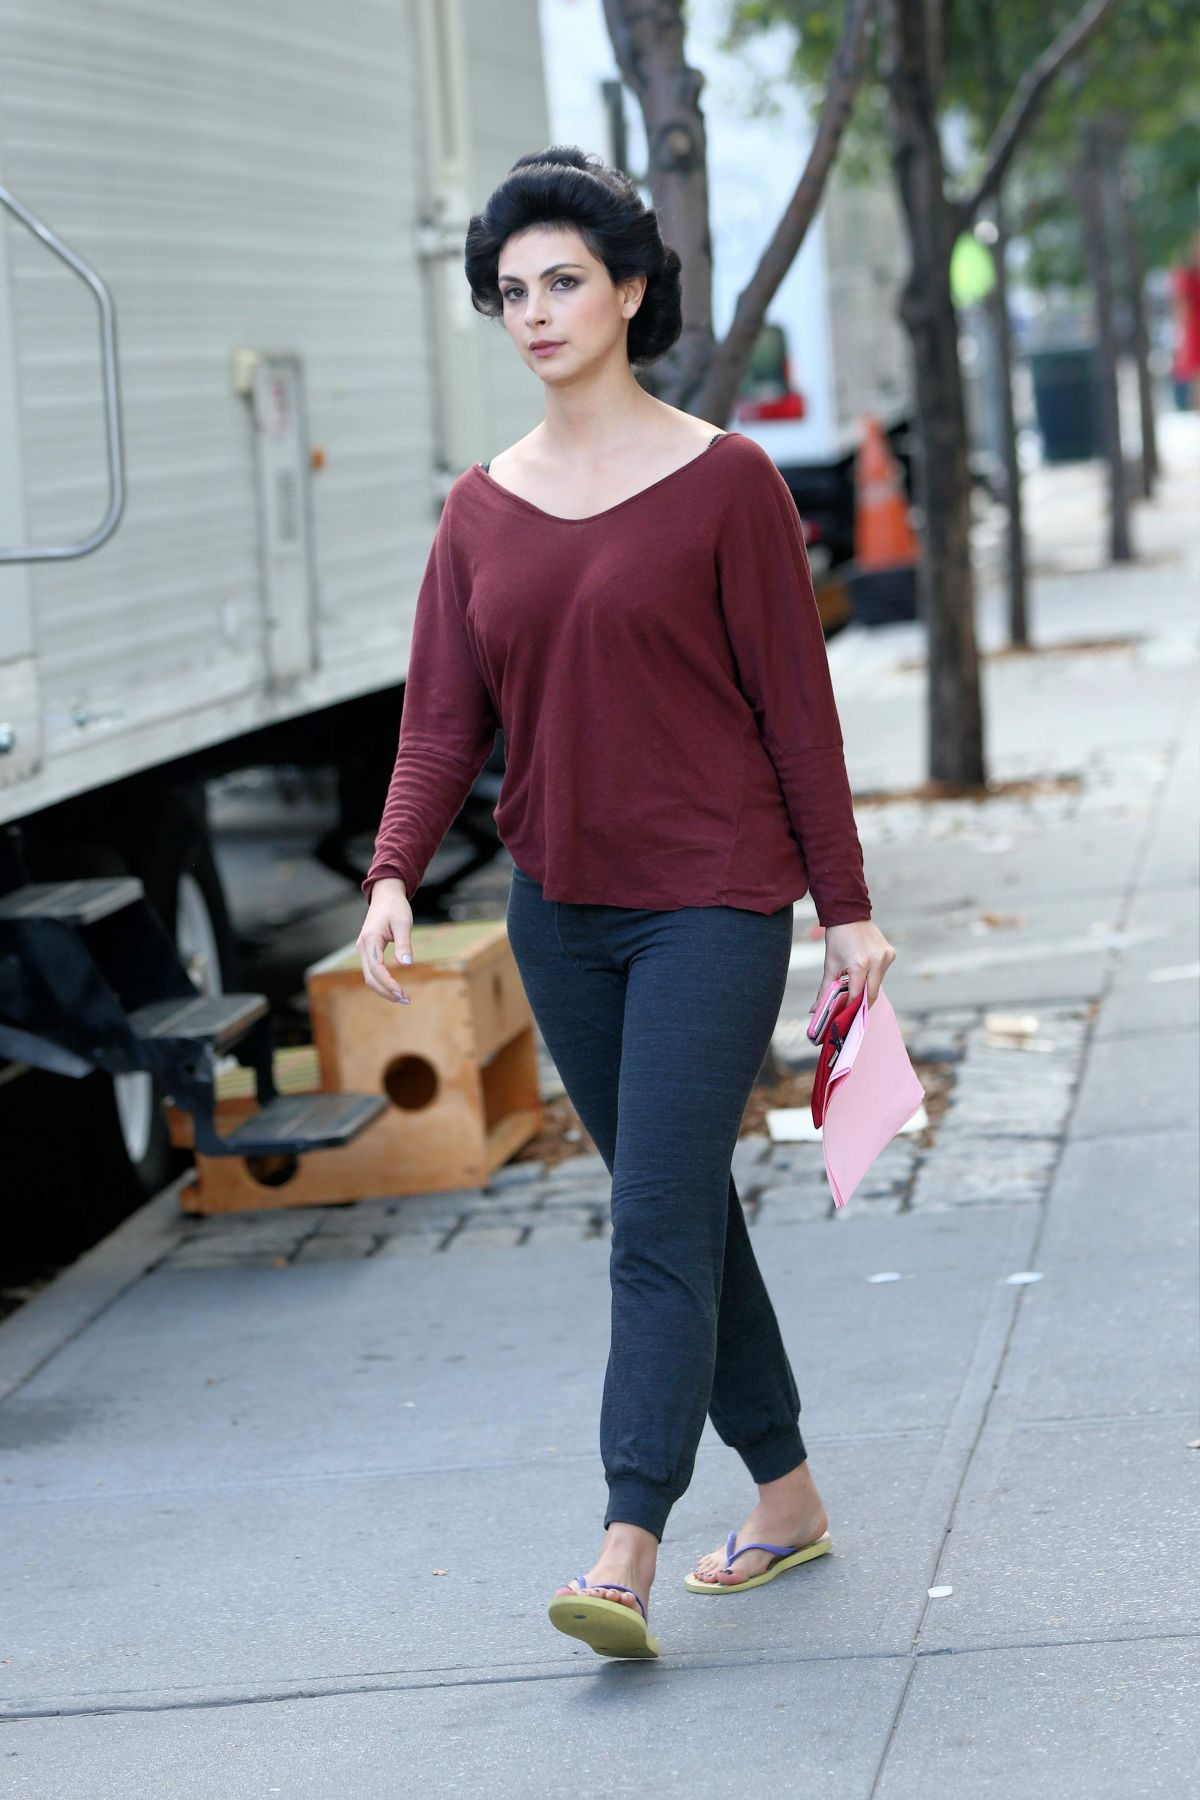 MORENA BACCARIN Out and About in New York 10/19/2016